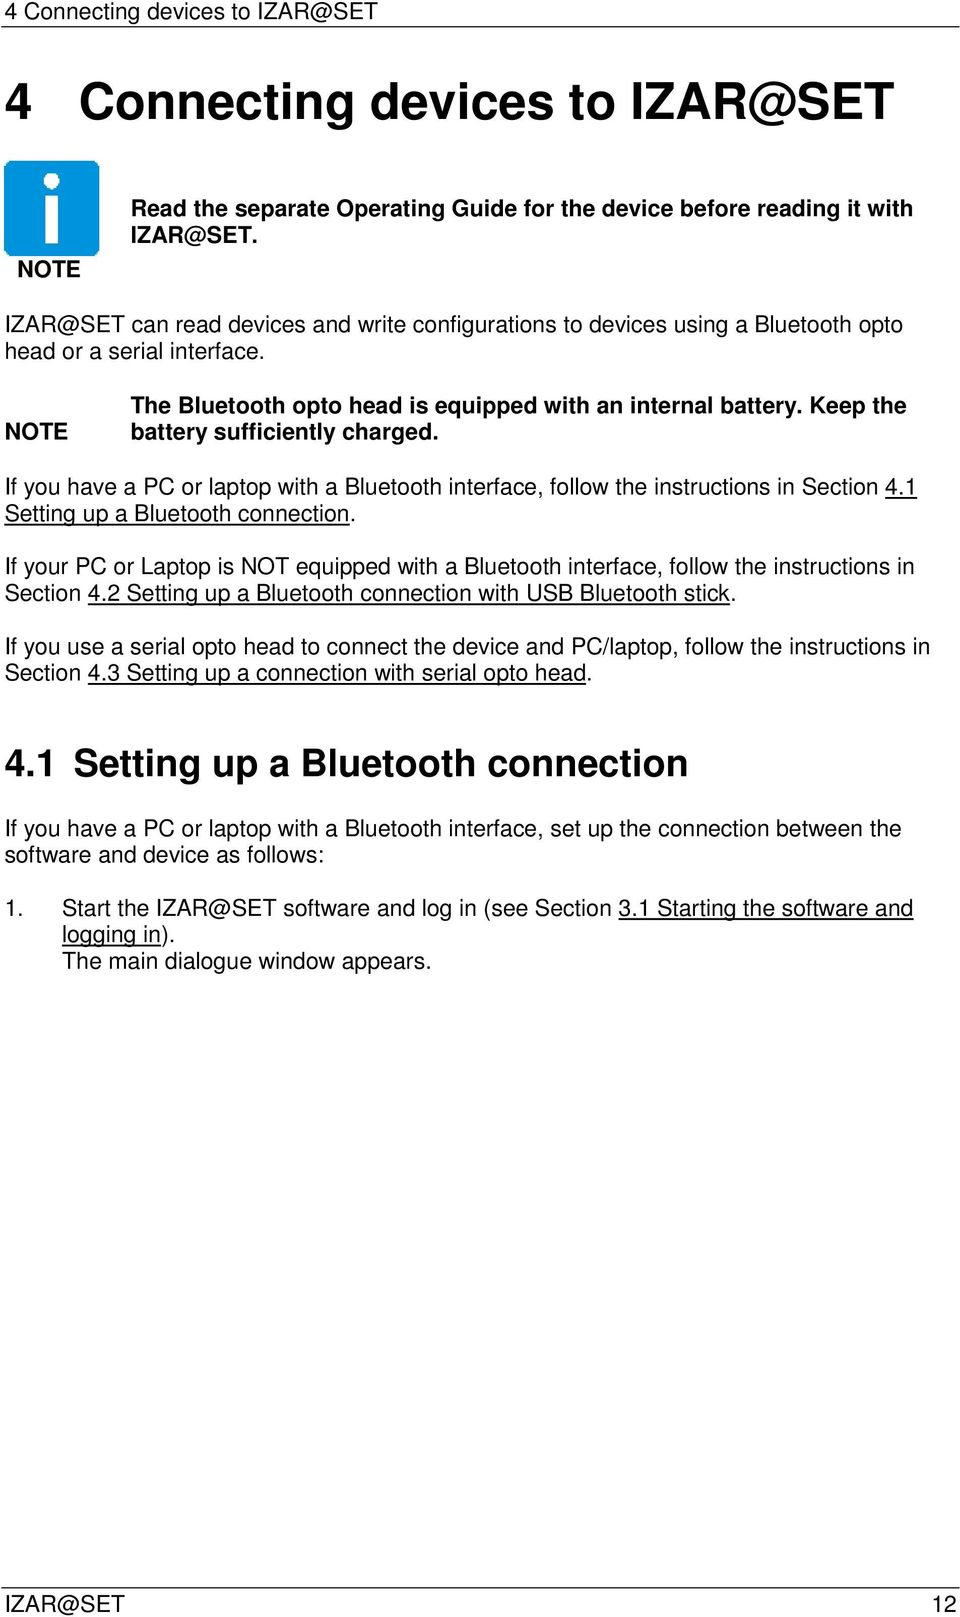 Keep the battery sufficiently charged. If you have a PC or laptop with a Bluetooth interface, follow the instructions in Section 4.1 Setting up a Bluetooth connection.